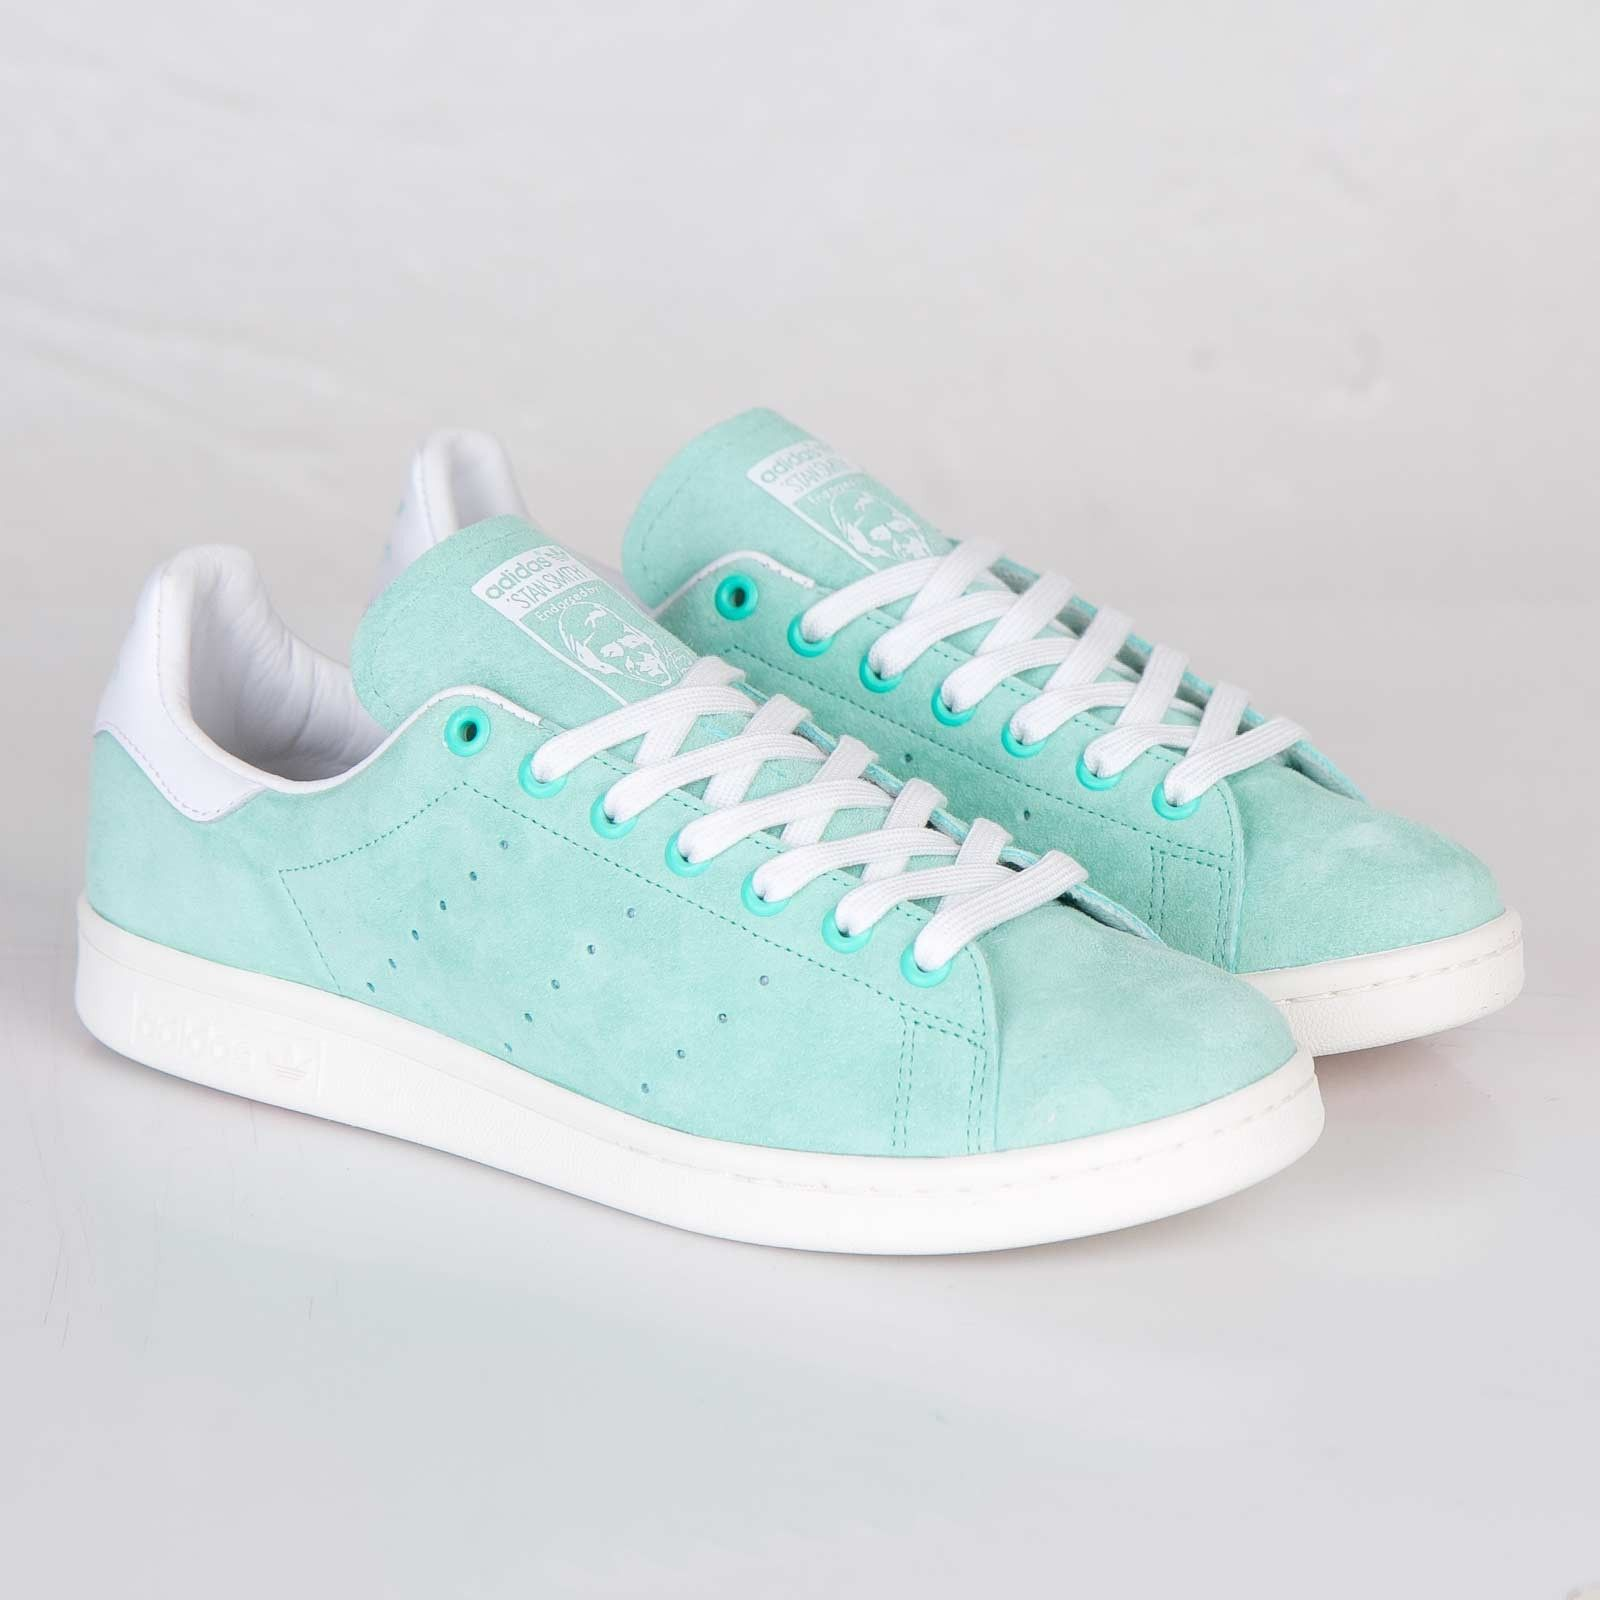 adidas originals stan smith 2 mens Green